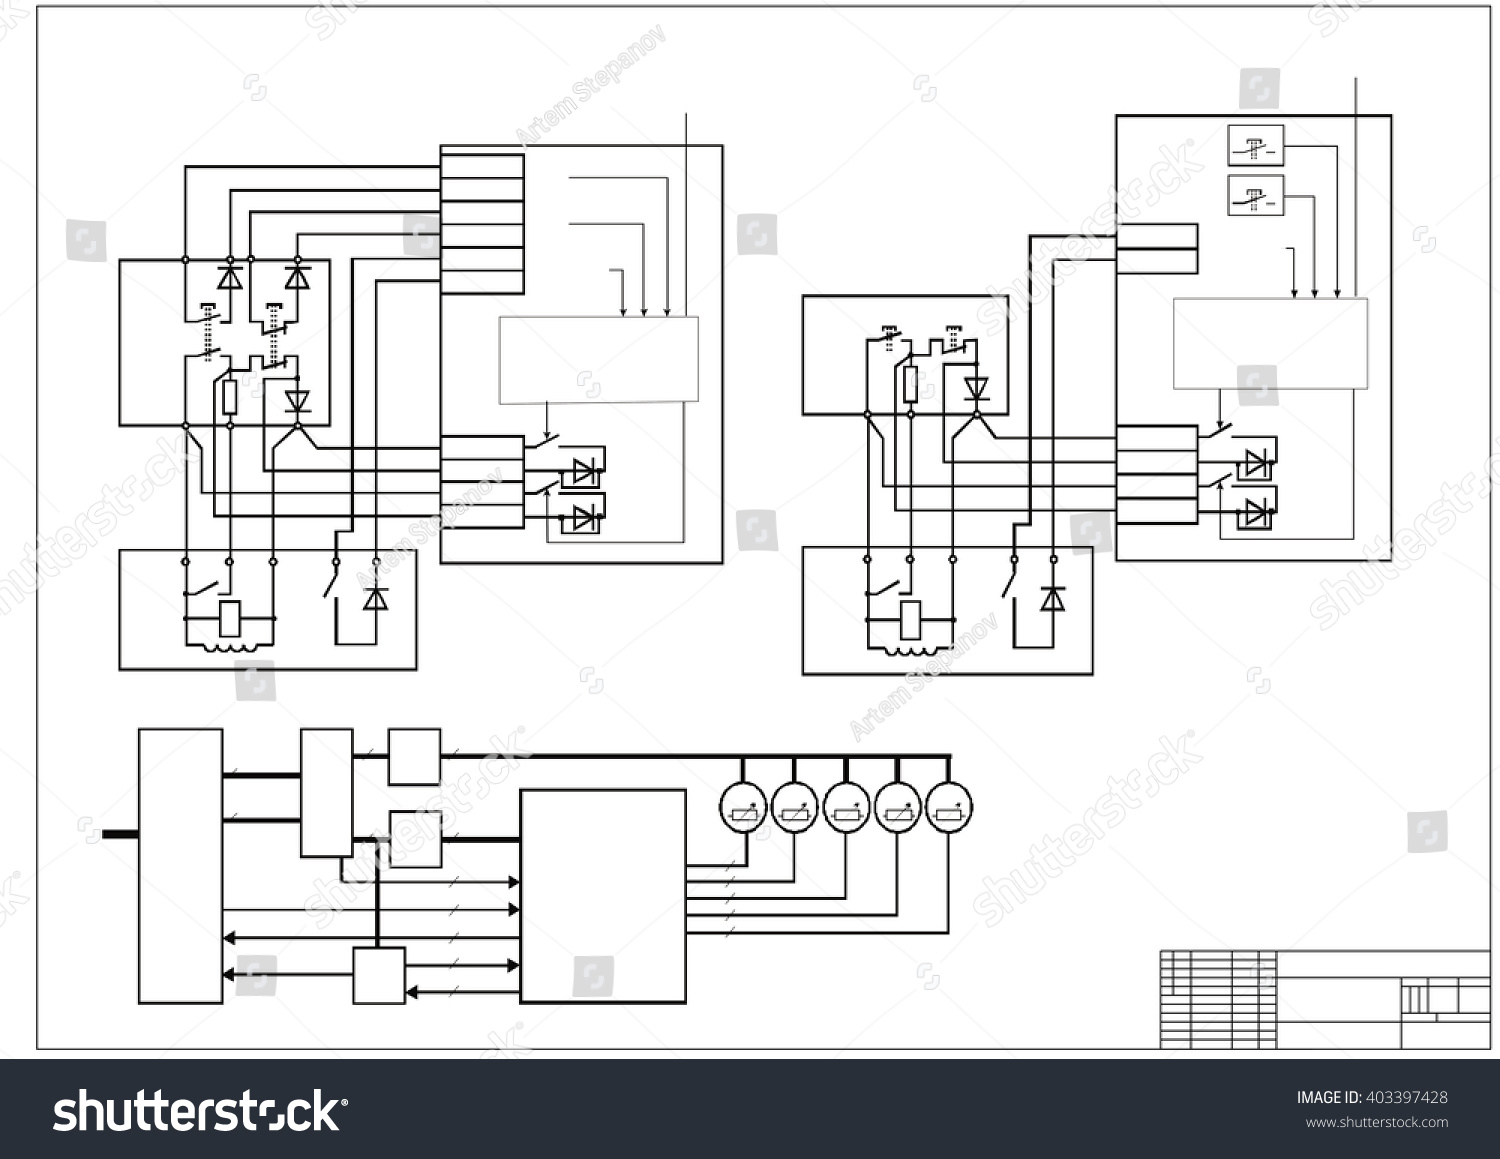 Schematic Diagram Power Supply Circuit Stock Vector Royalty Drawing